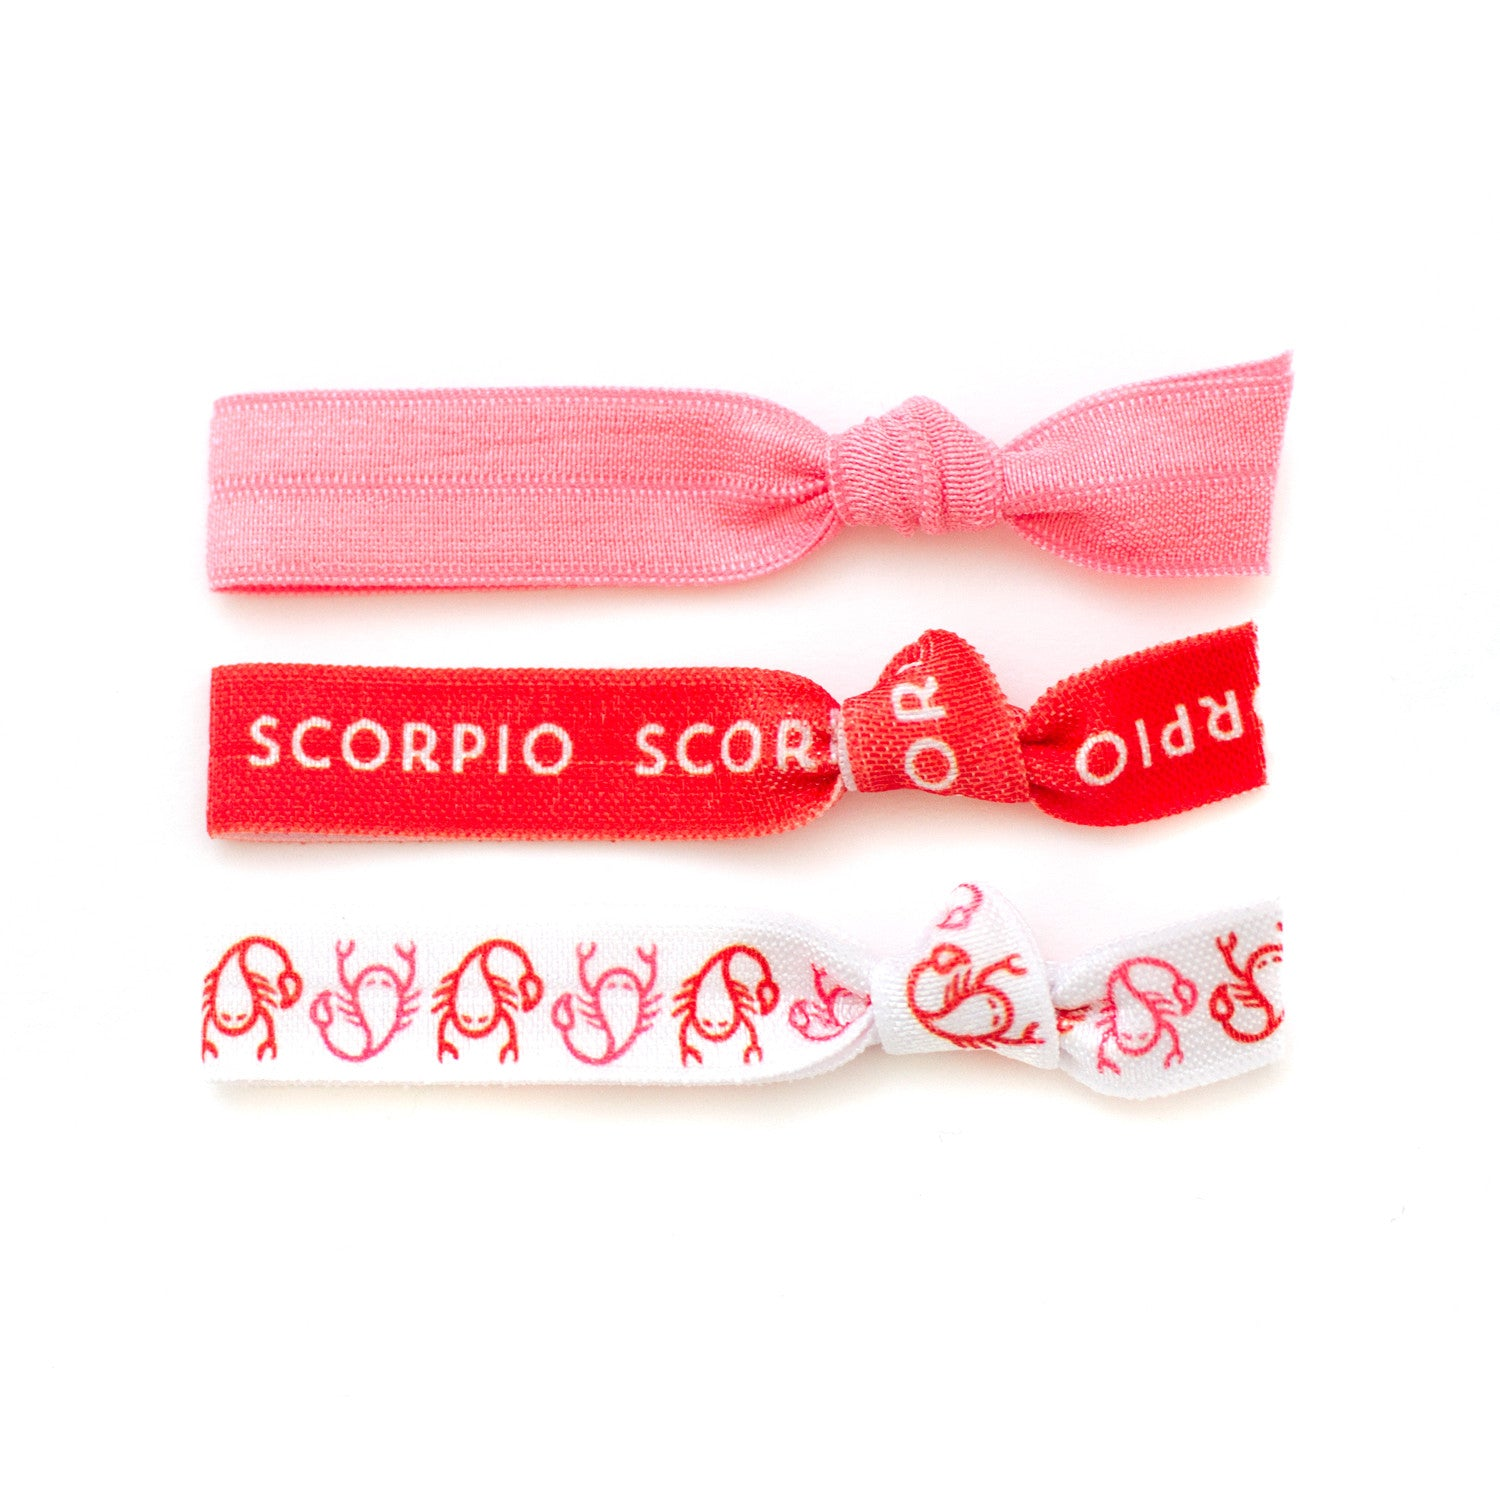 Scorpio Ponytail Holders